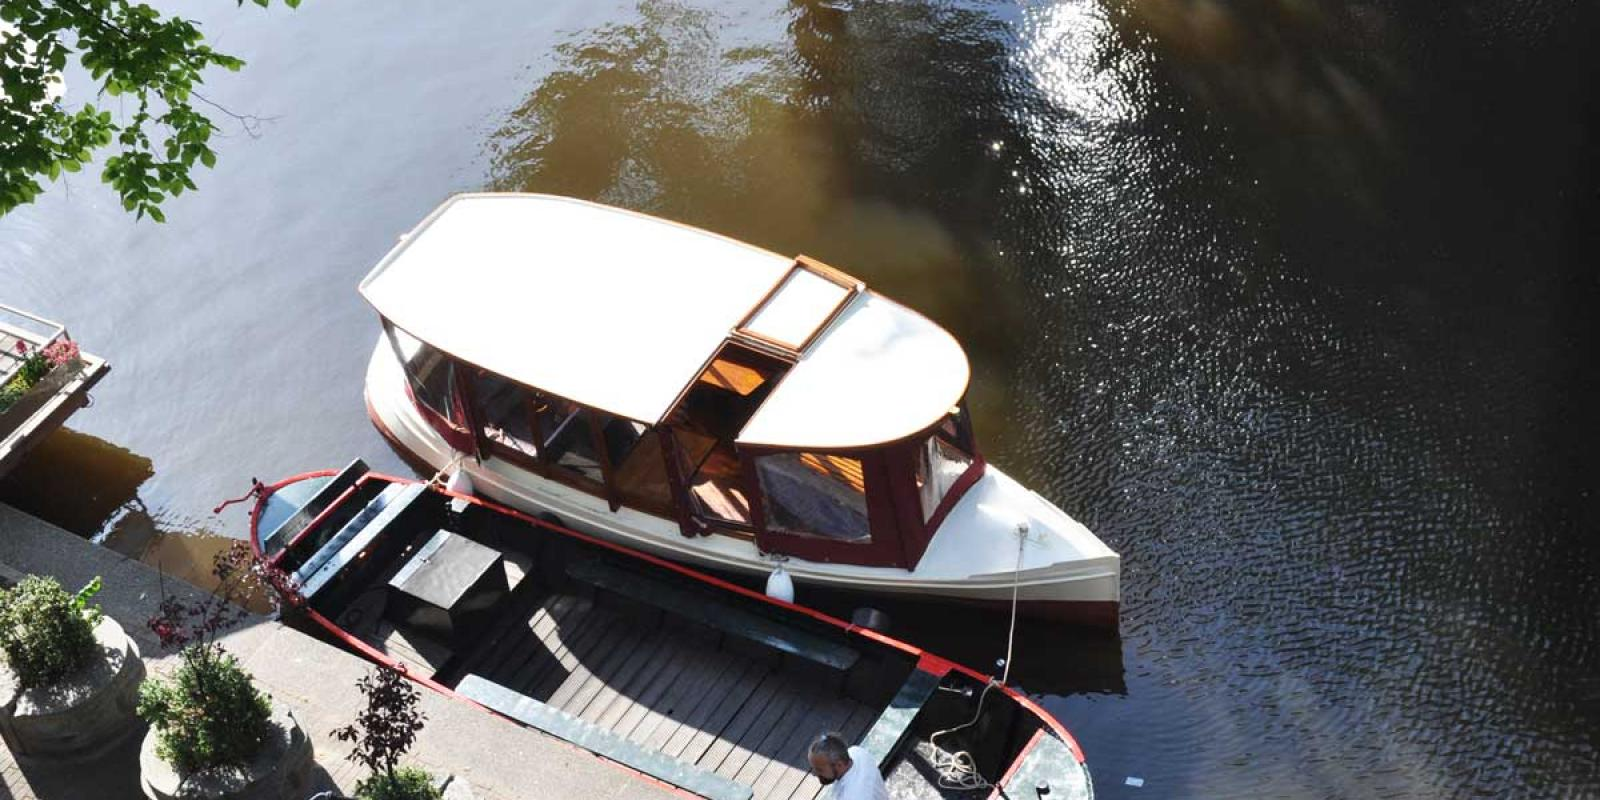 Roof Farahile Private Boat Amsterdam